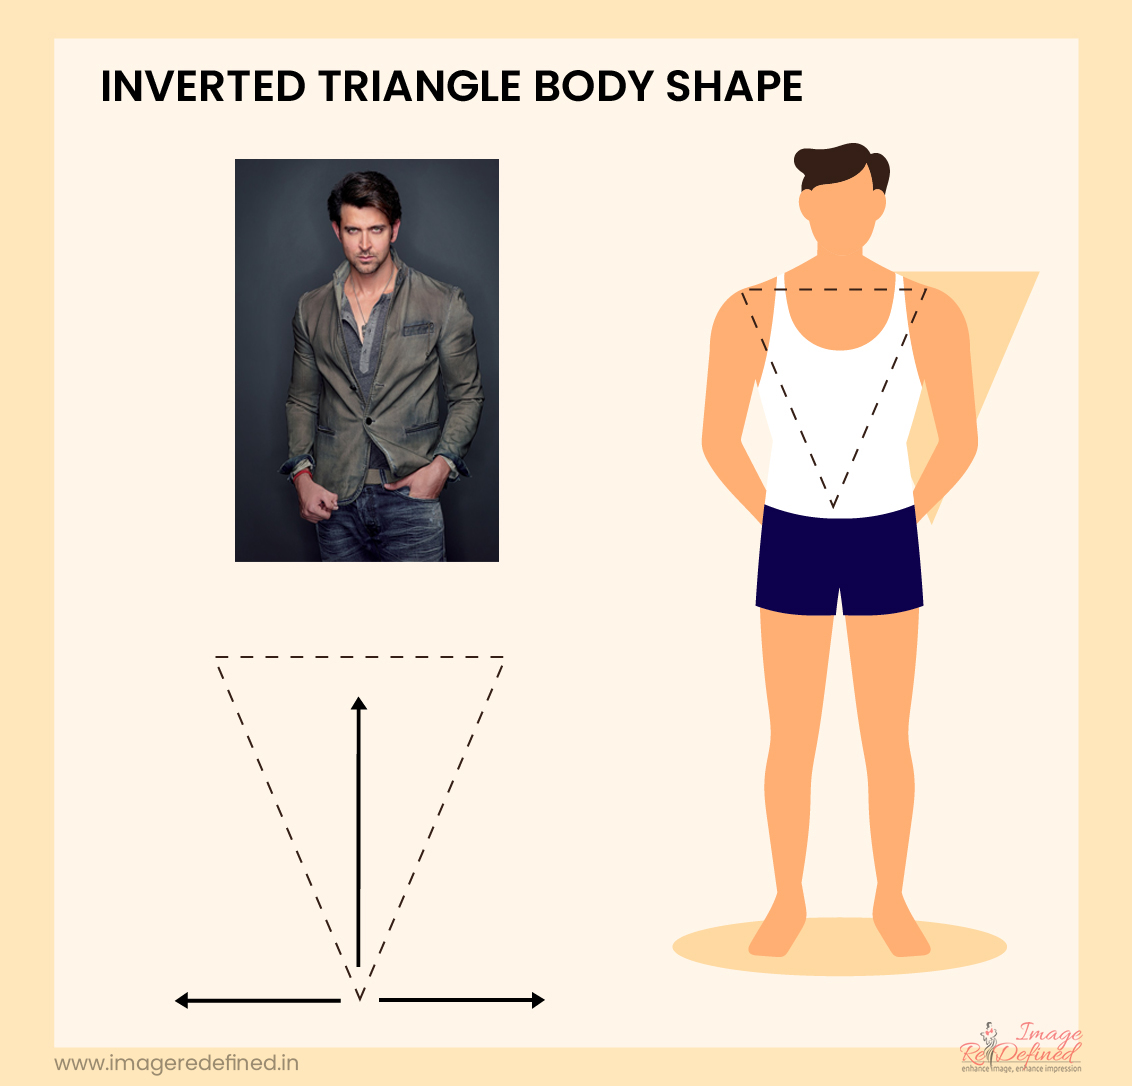 Inverted Triangle Body Shape of Men